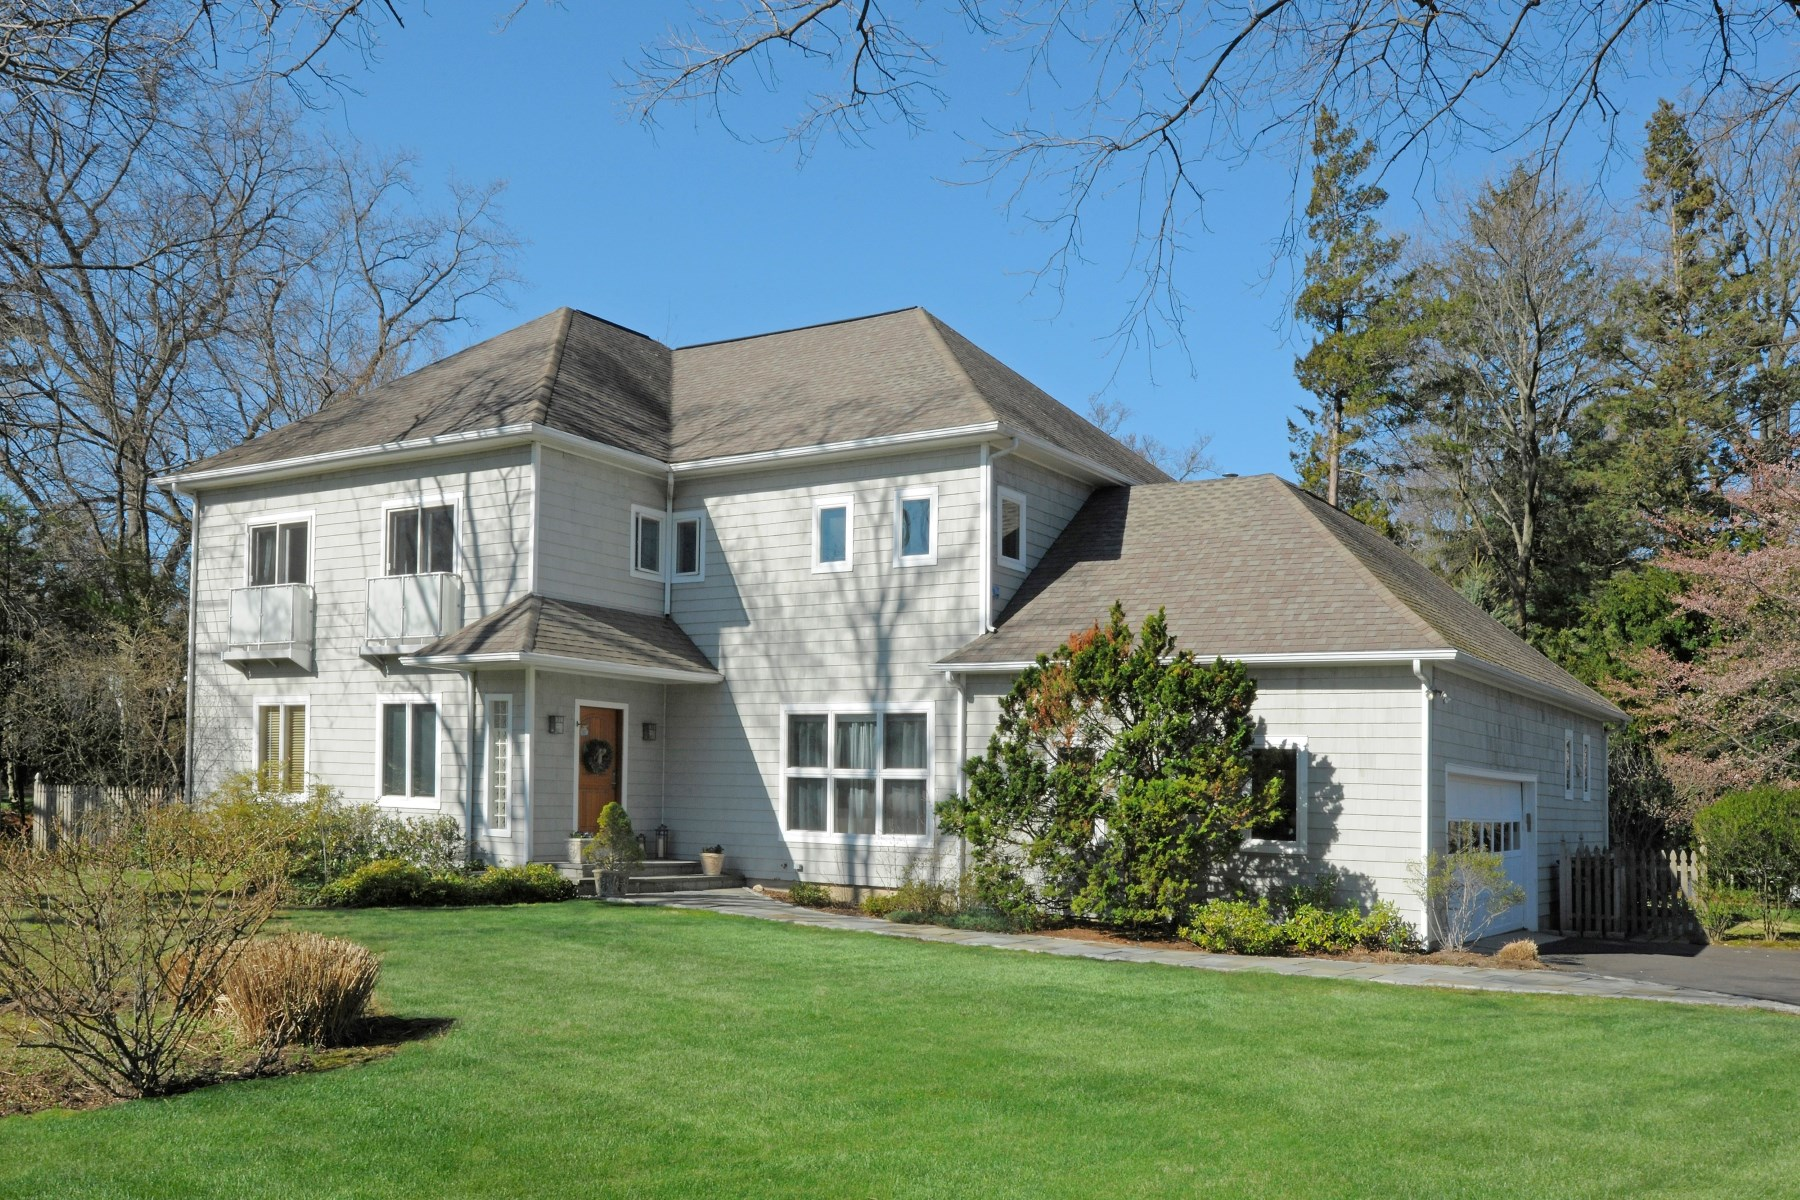 Single Family Home for Sale at In-Town Greenwich Cul de Sac Central Greenwich, Greenwich, Connecticut, 06830 United States